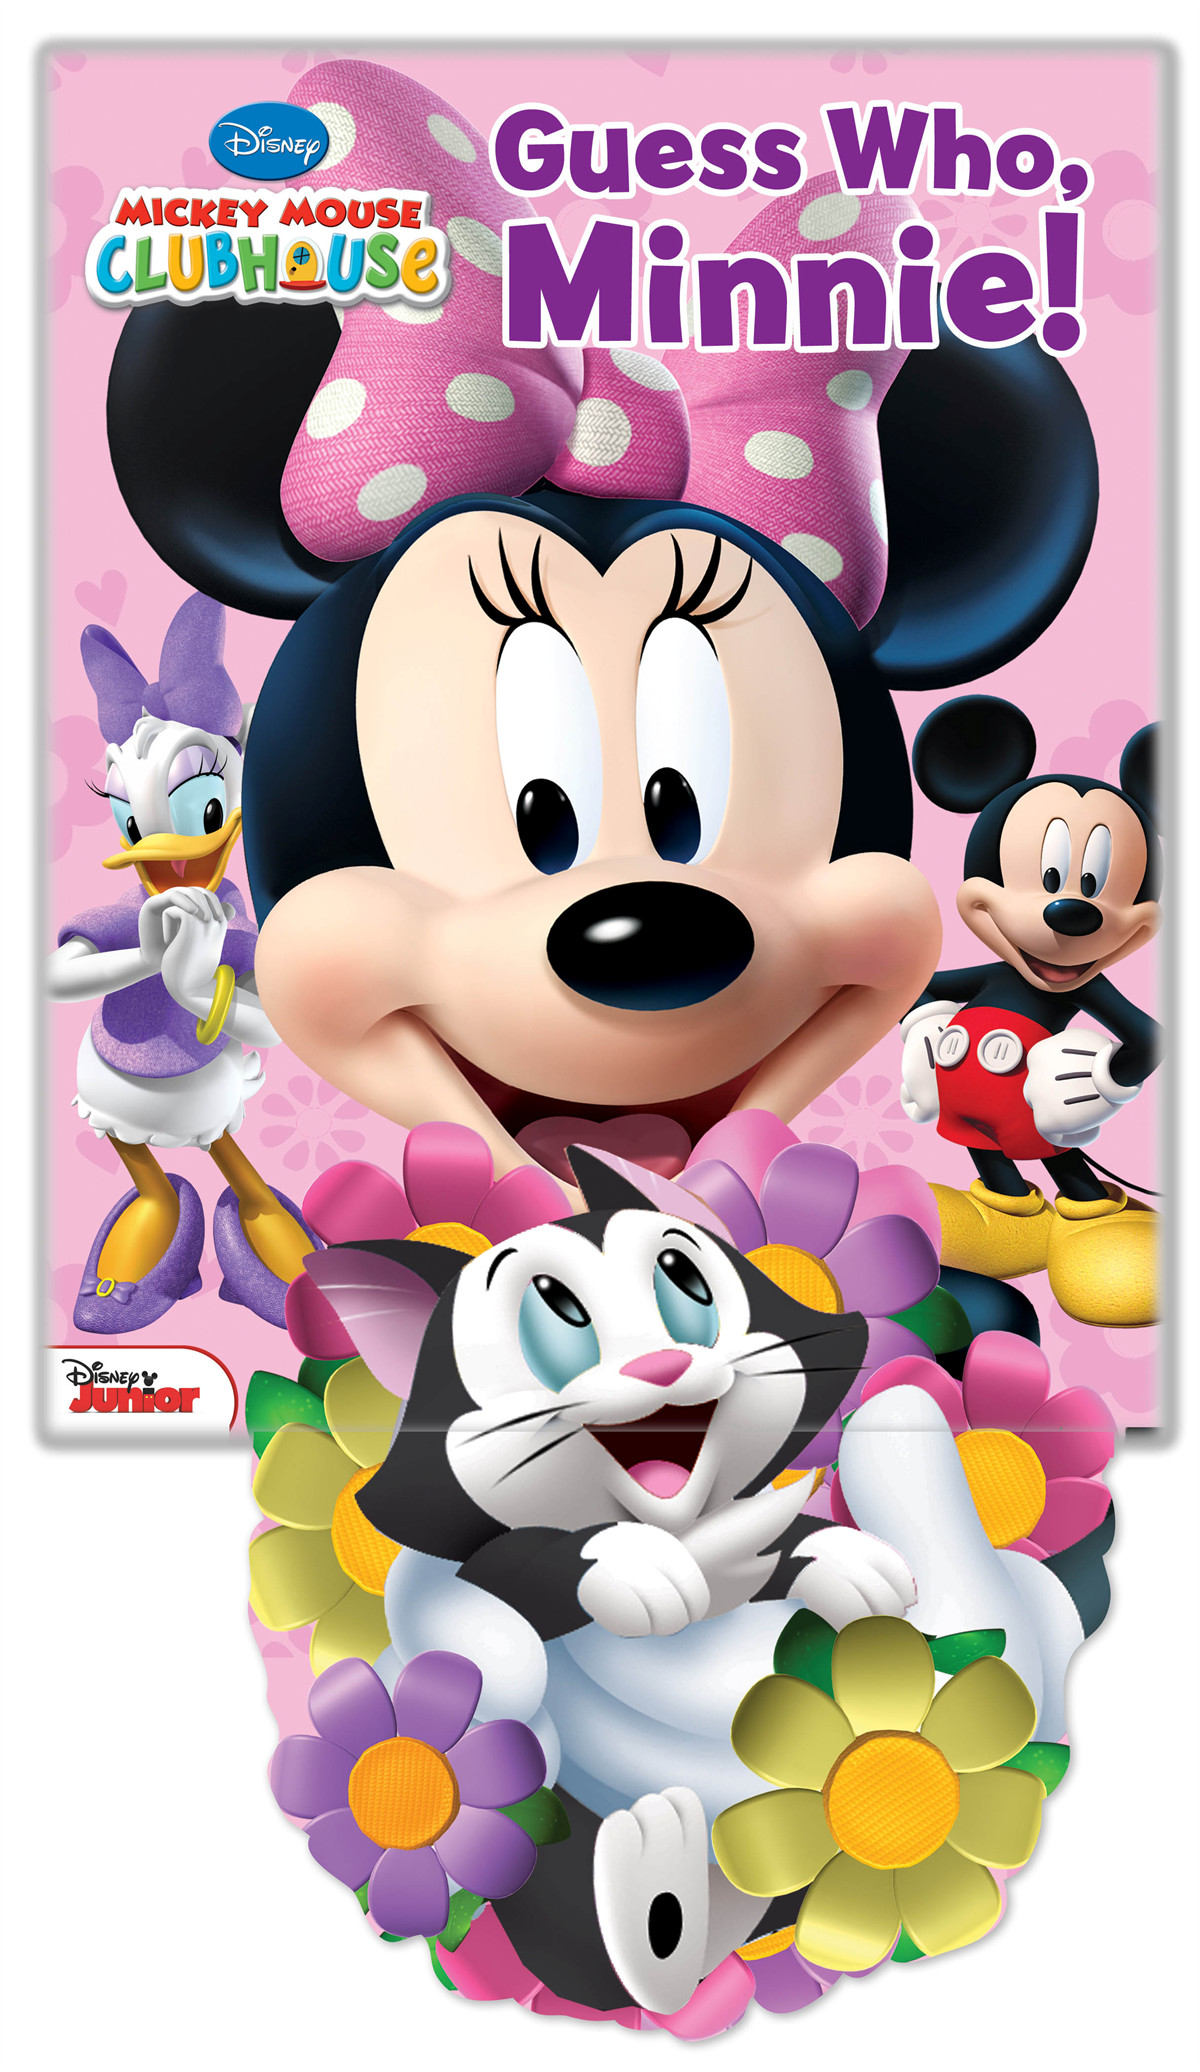 Disney guess who minnie! 9780794425555.in01